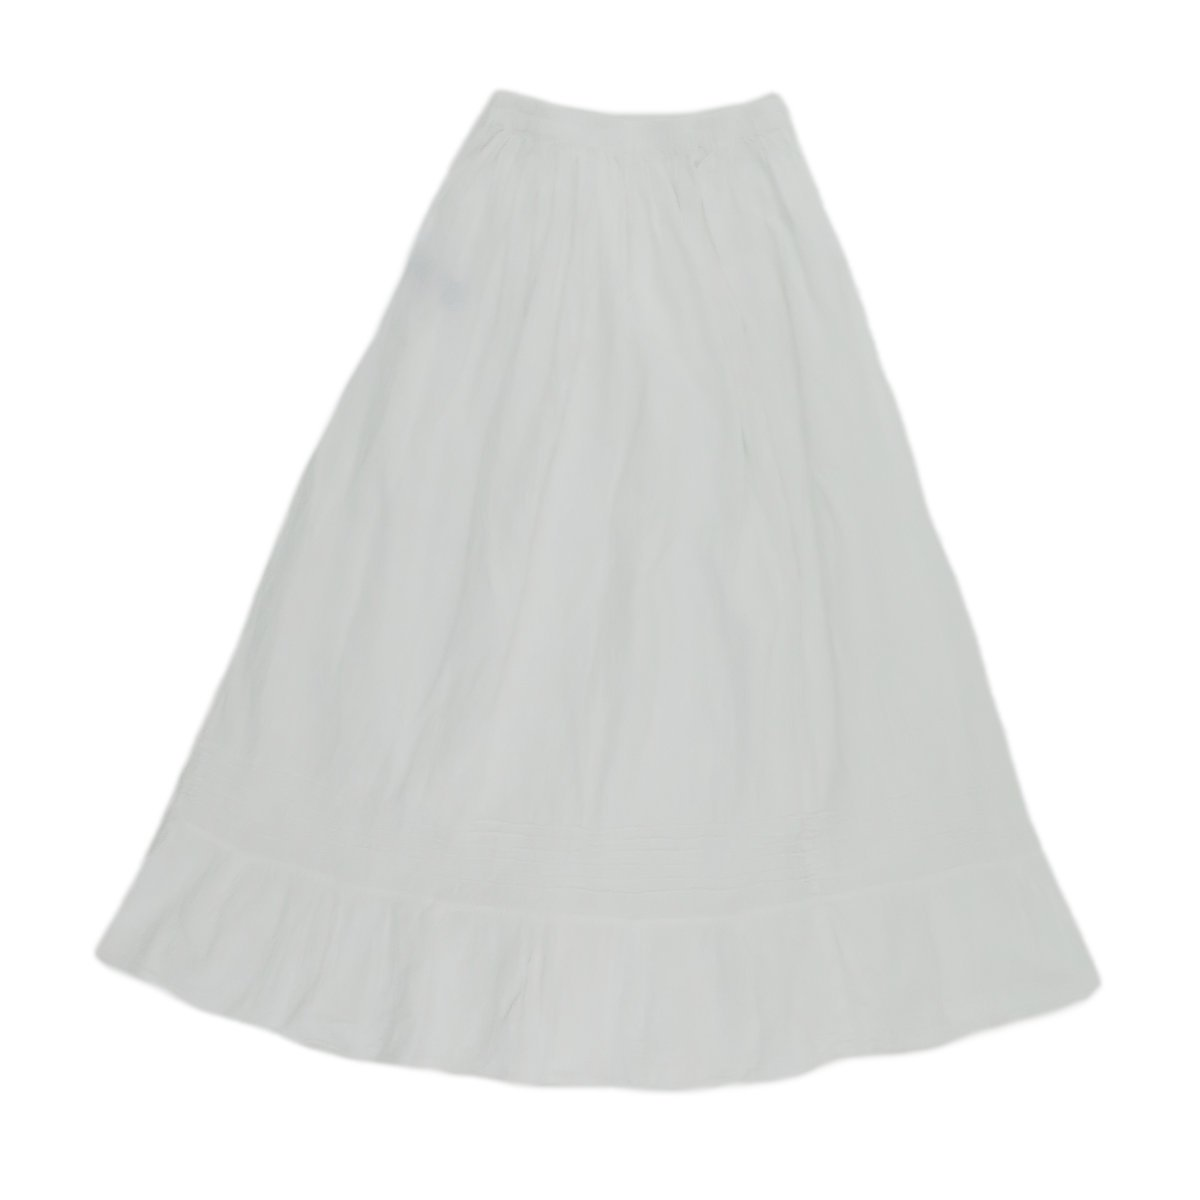 Women's White Cotton Embroidered Mexican Skirt - DeluxeAdultCostumes.com